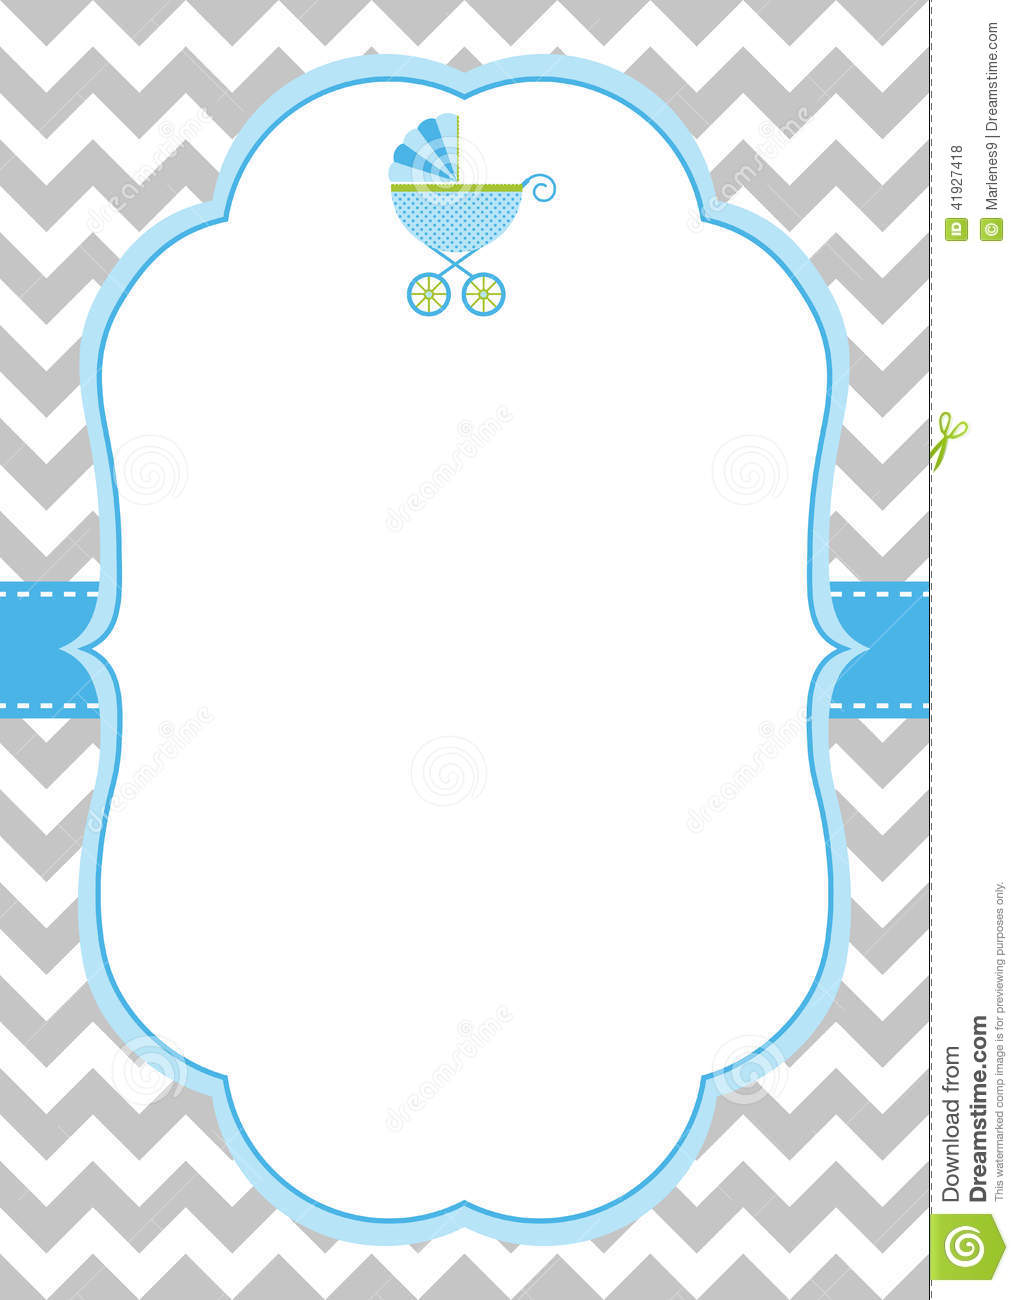 baby boy invitation templates - Yeni.mescale.co